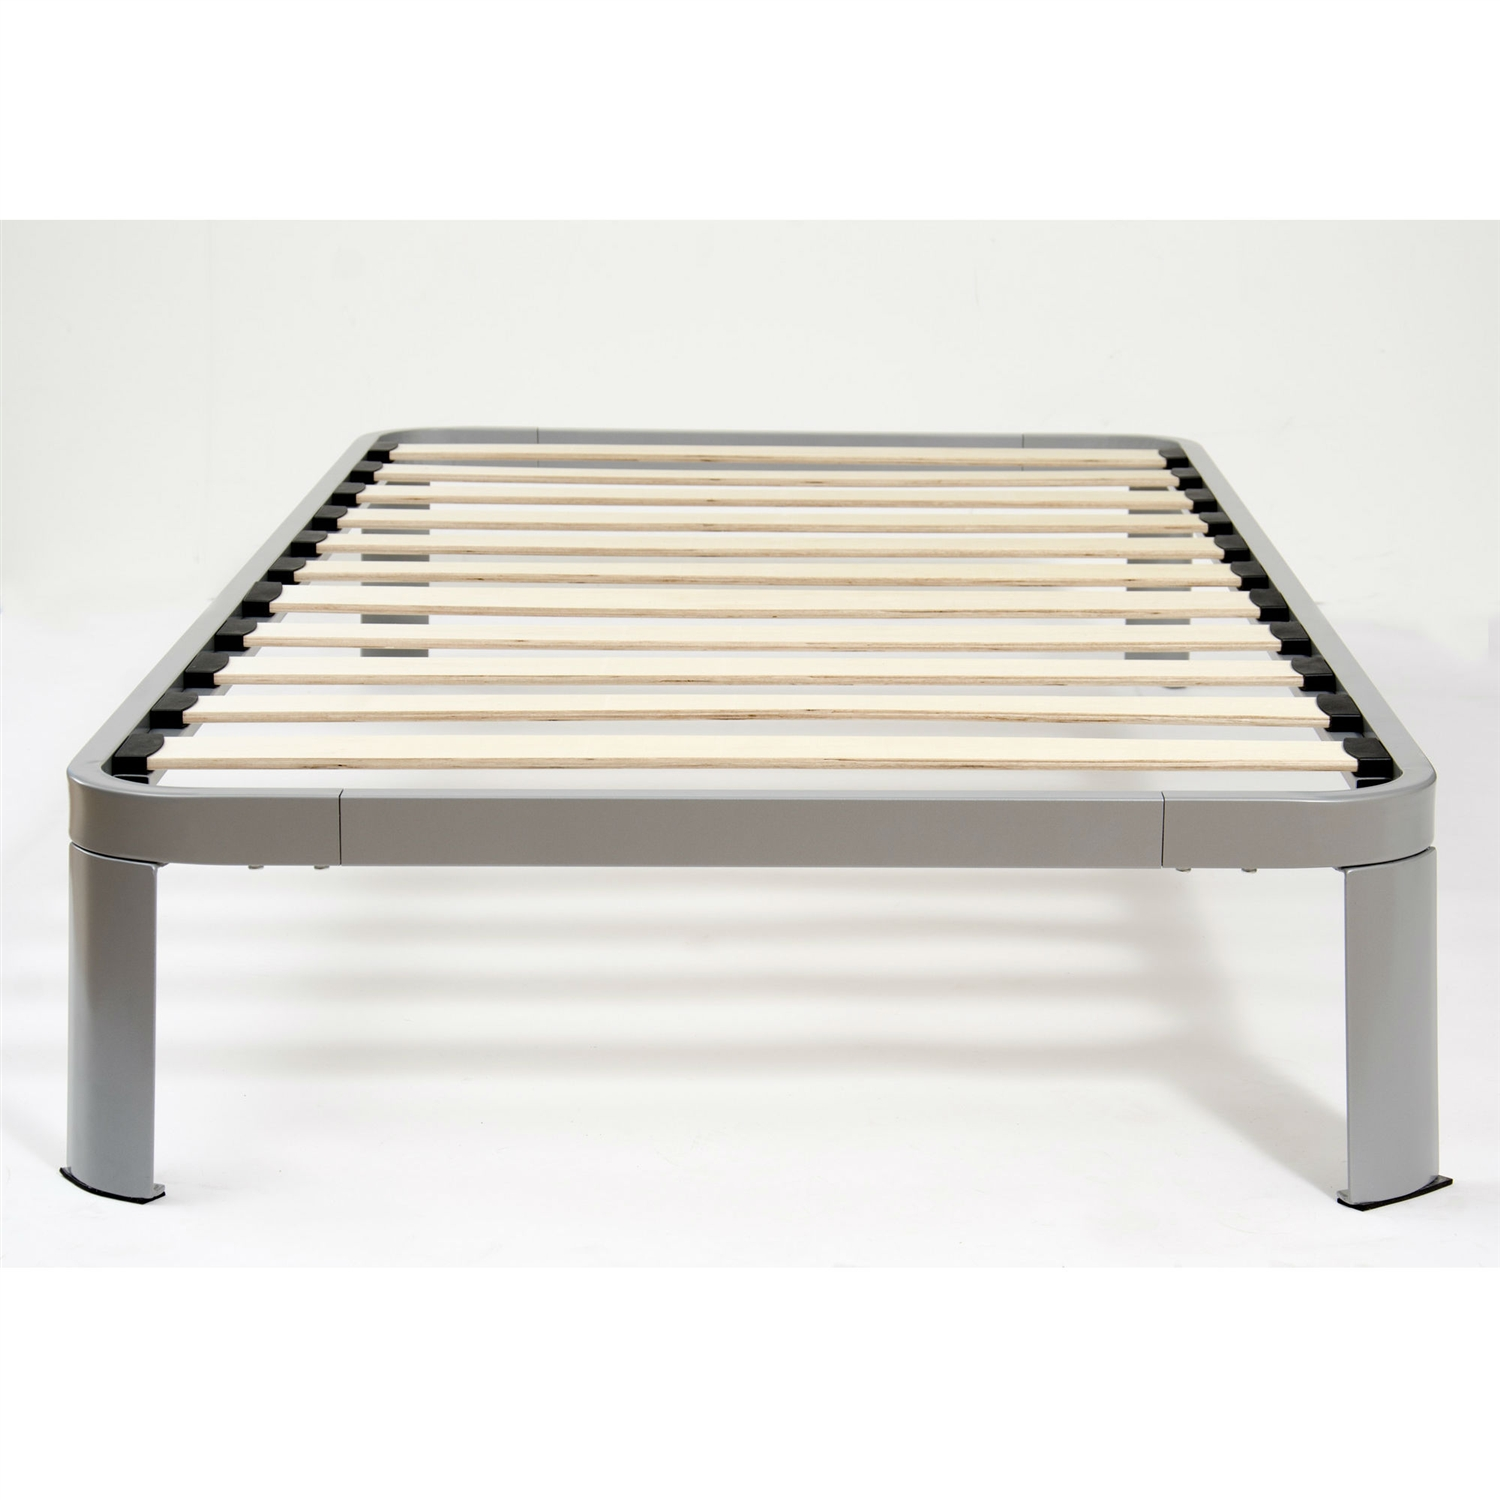 twin size mattress and frame Twin size Luna Metal Platform Bed Frame with Wood Slats  twin size mattress and frame